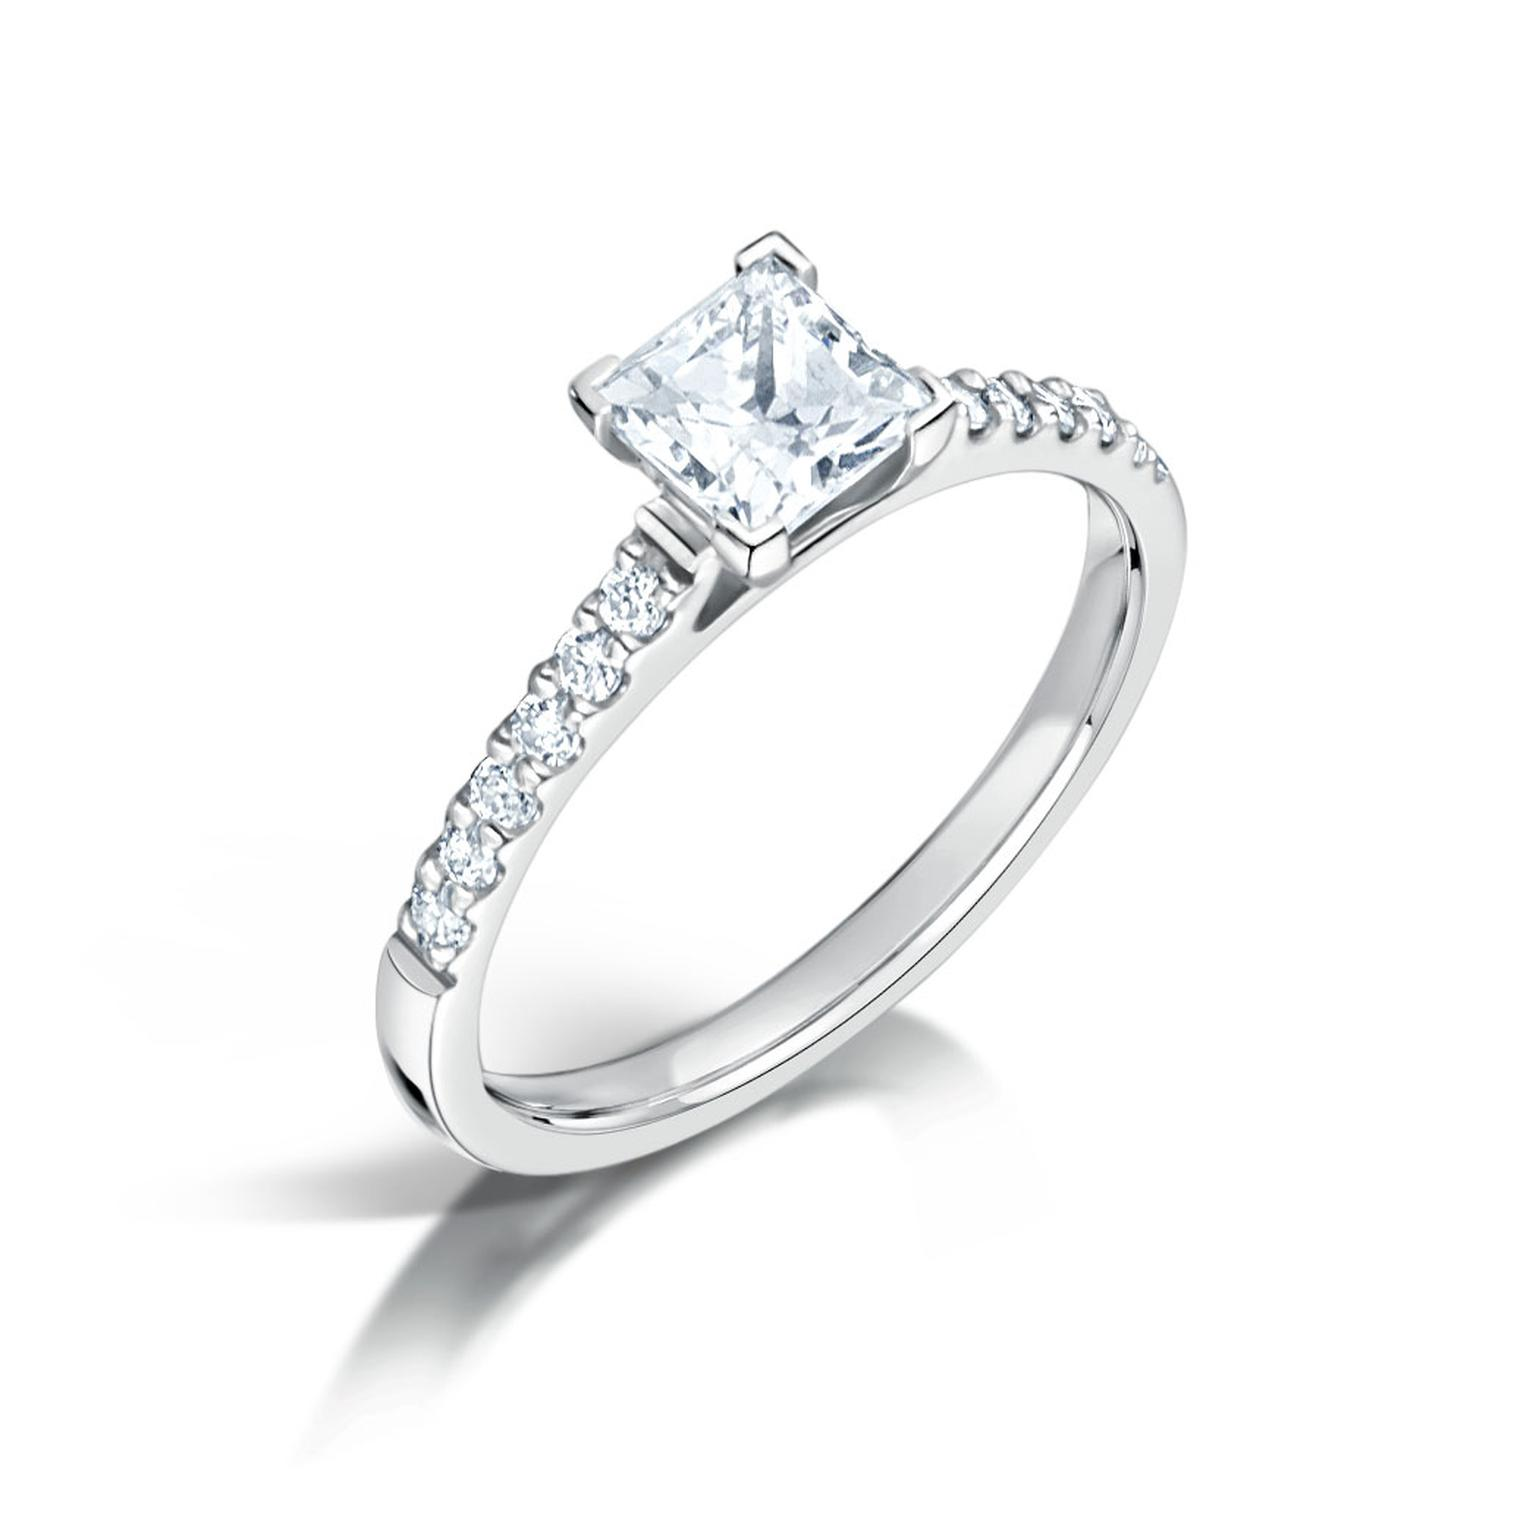 Arctic Circle Fairtrade gold engagement ring